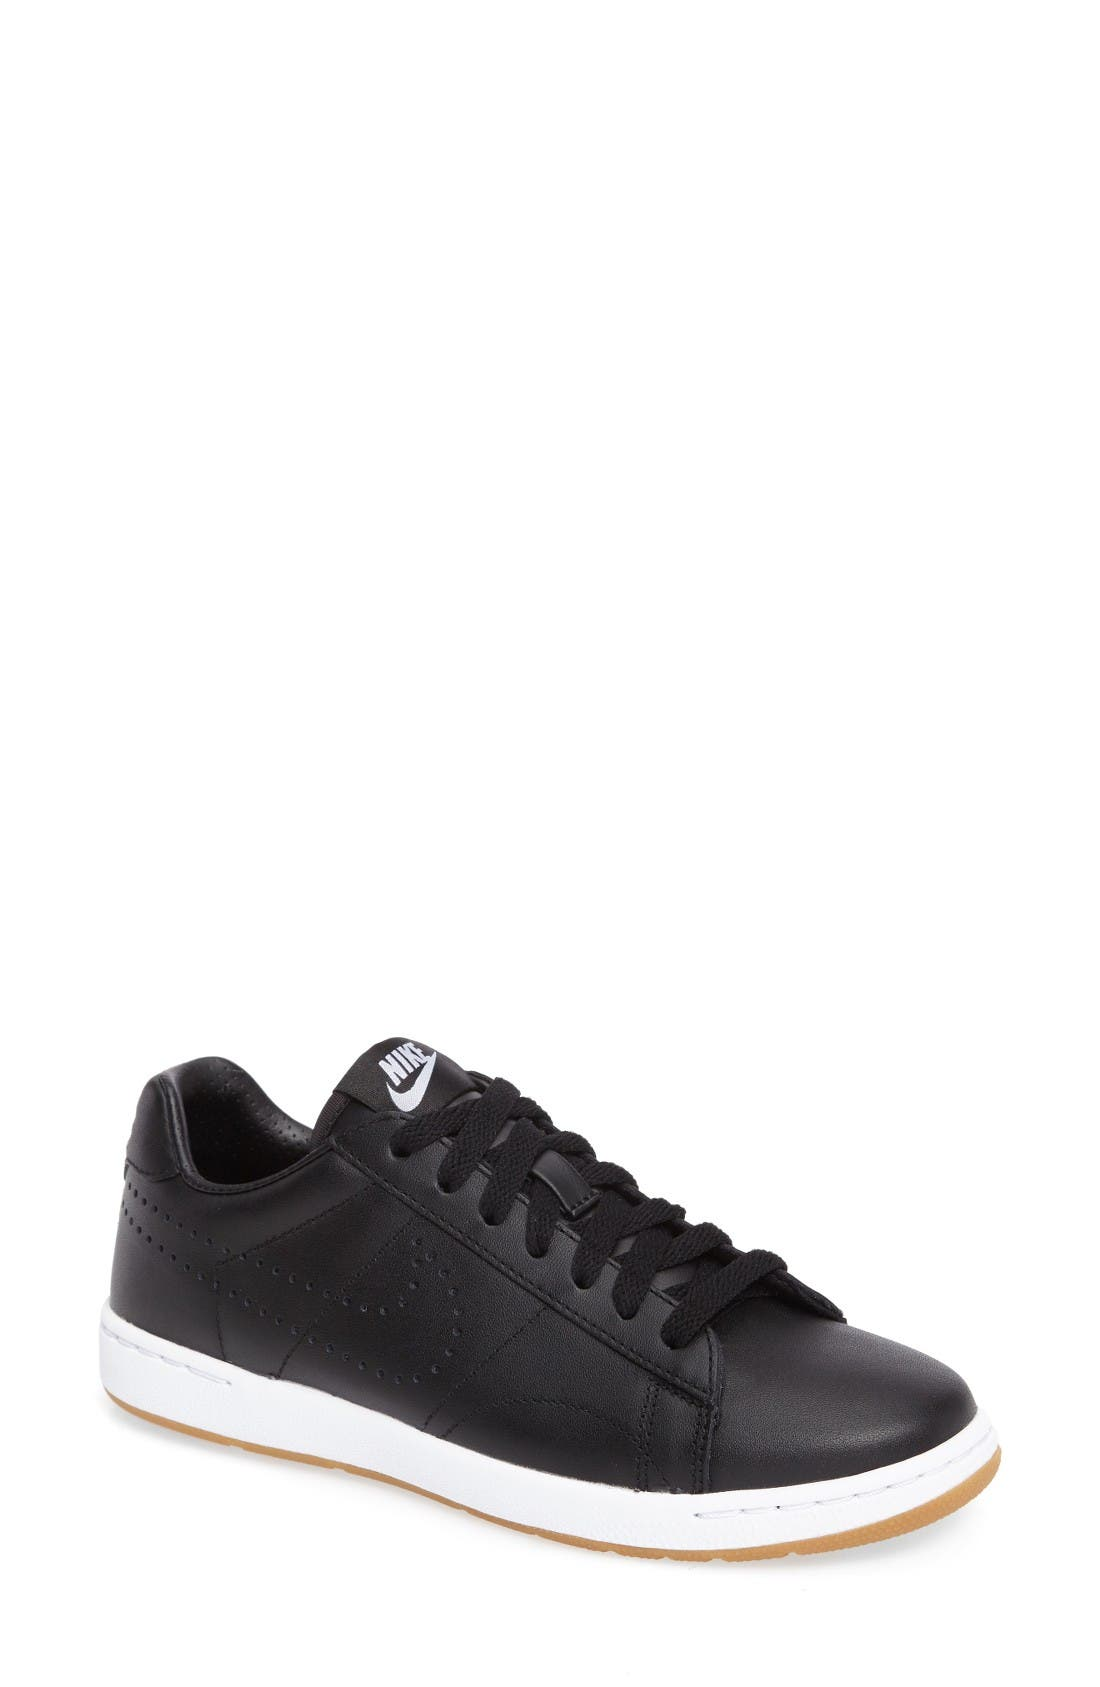 'Classic Ultra' Leather Sneaker,                         Main,                         color, Black/ White/ Brown